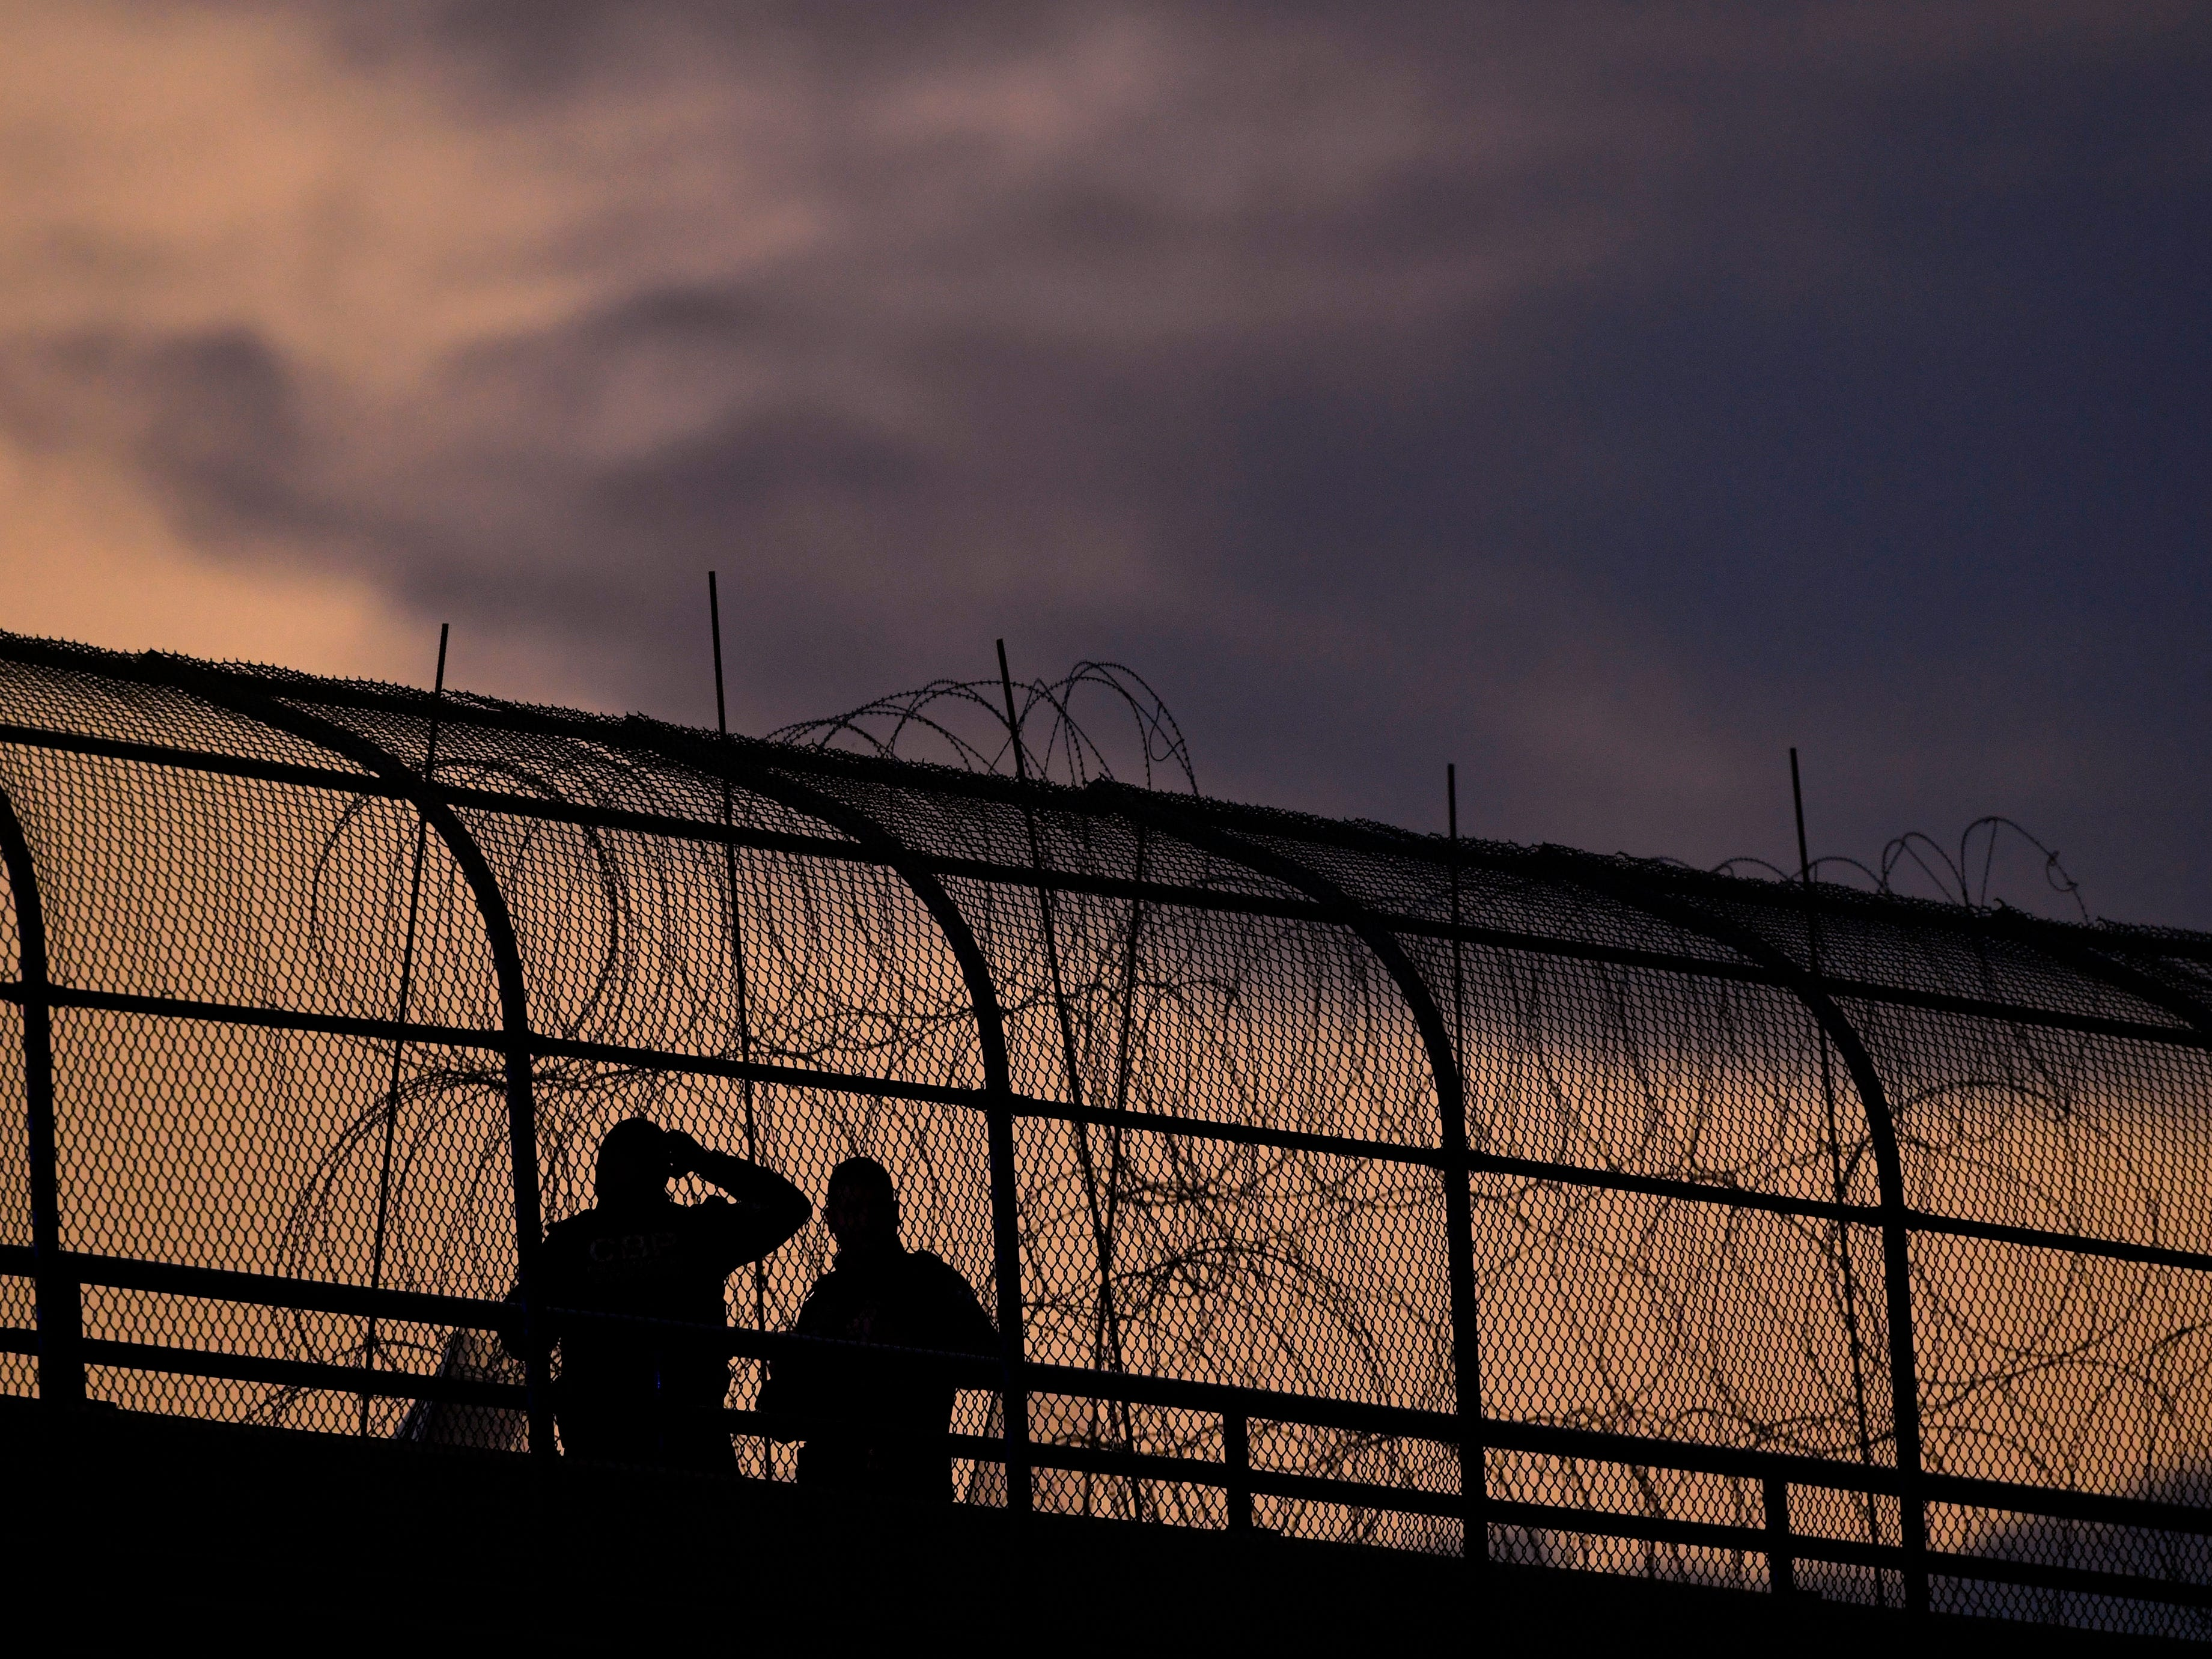 U.S. Customs and Border Protection agents are silhouetted against the evening sky Wednesday Feb. 6, 2019 on the Camino Real International Bridge in Eagle Pass.  caravan of Central American migrants has arrived in Piedras Negras and border law enforcement officials have increased their presence in response.